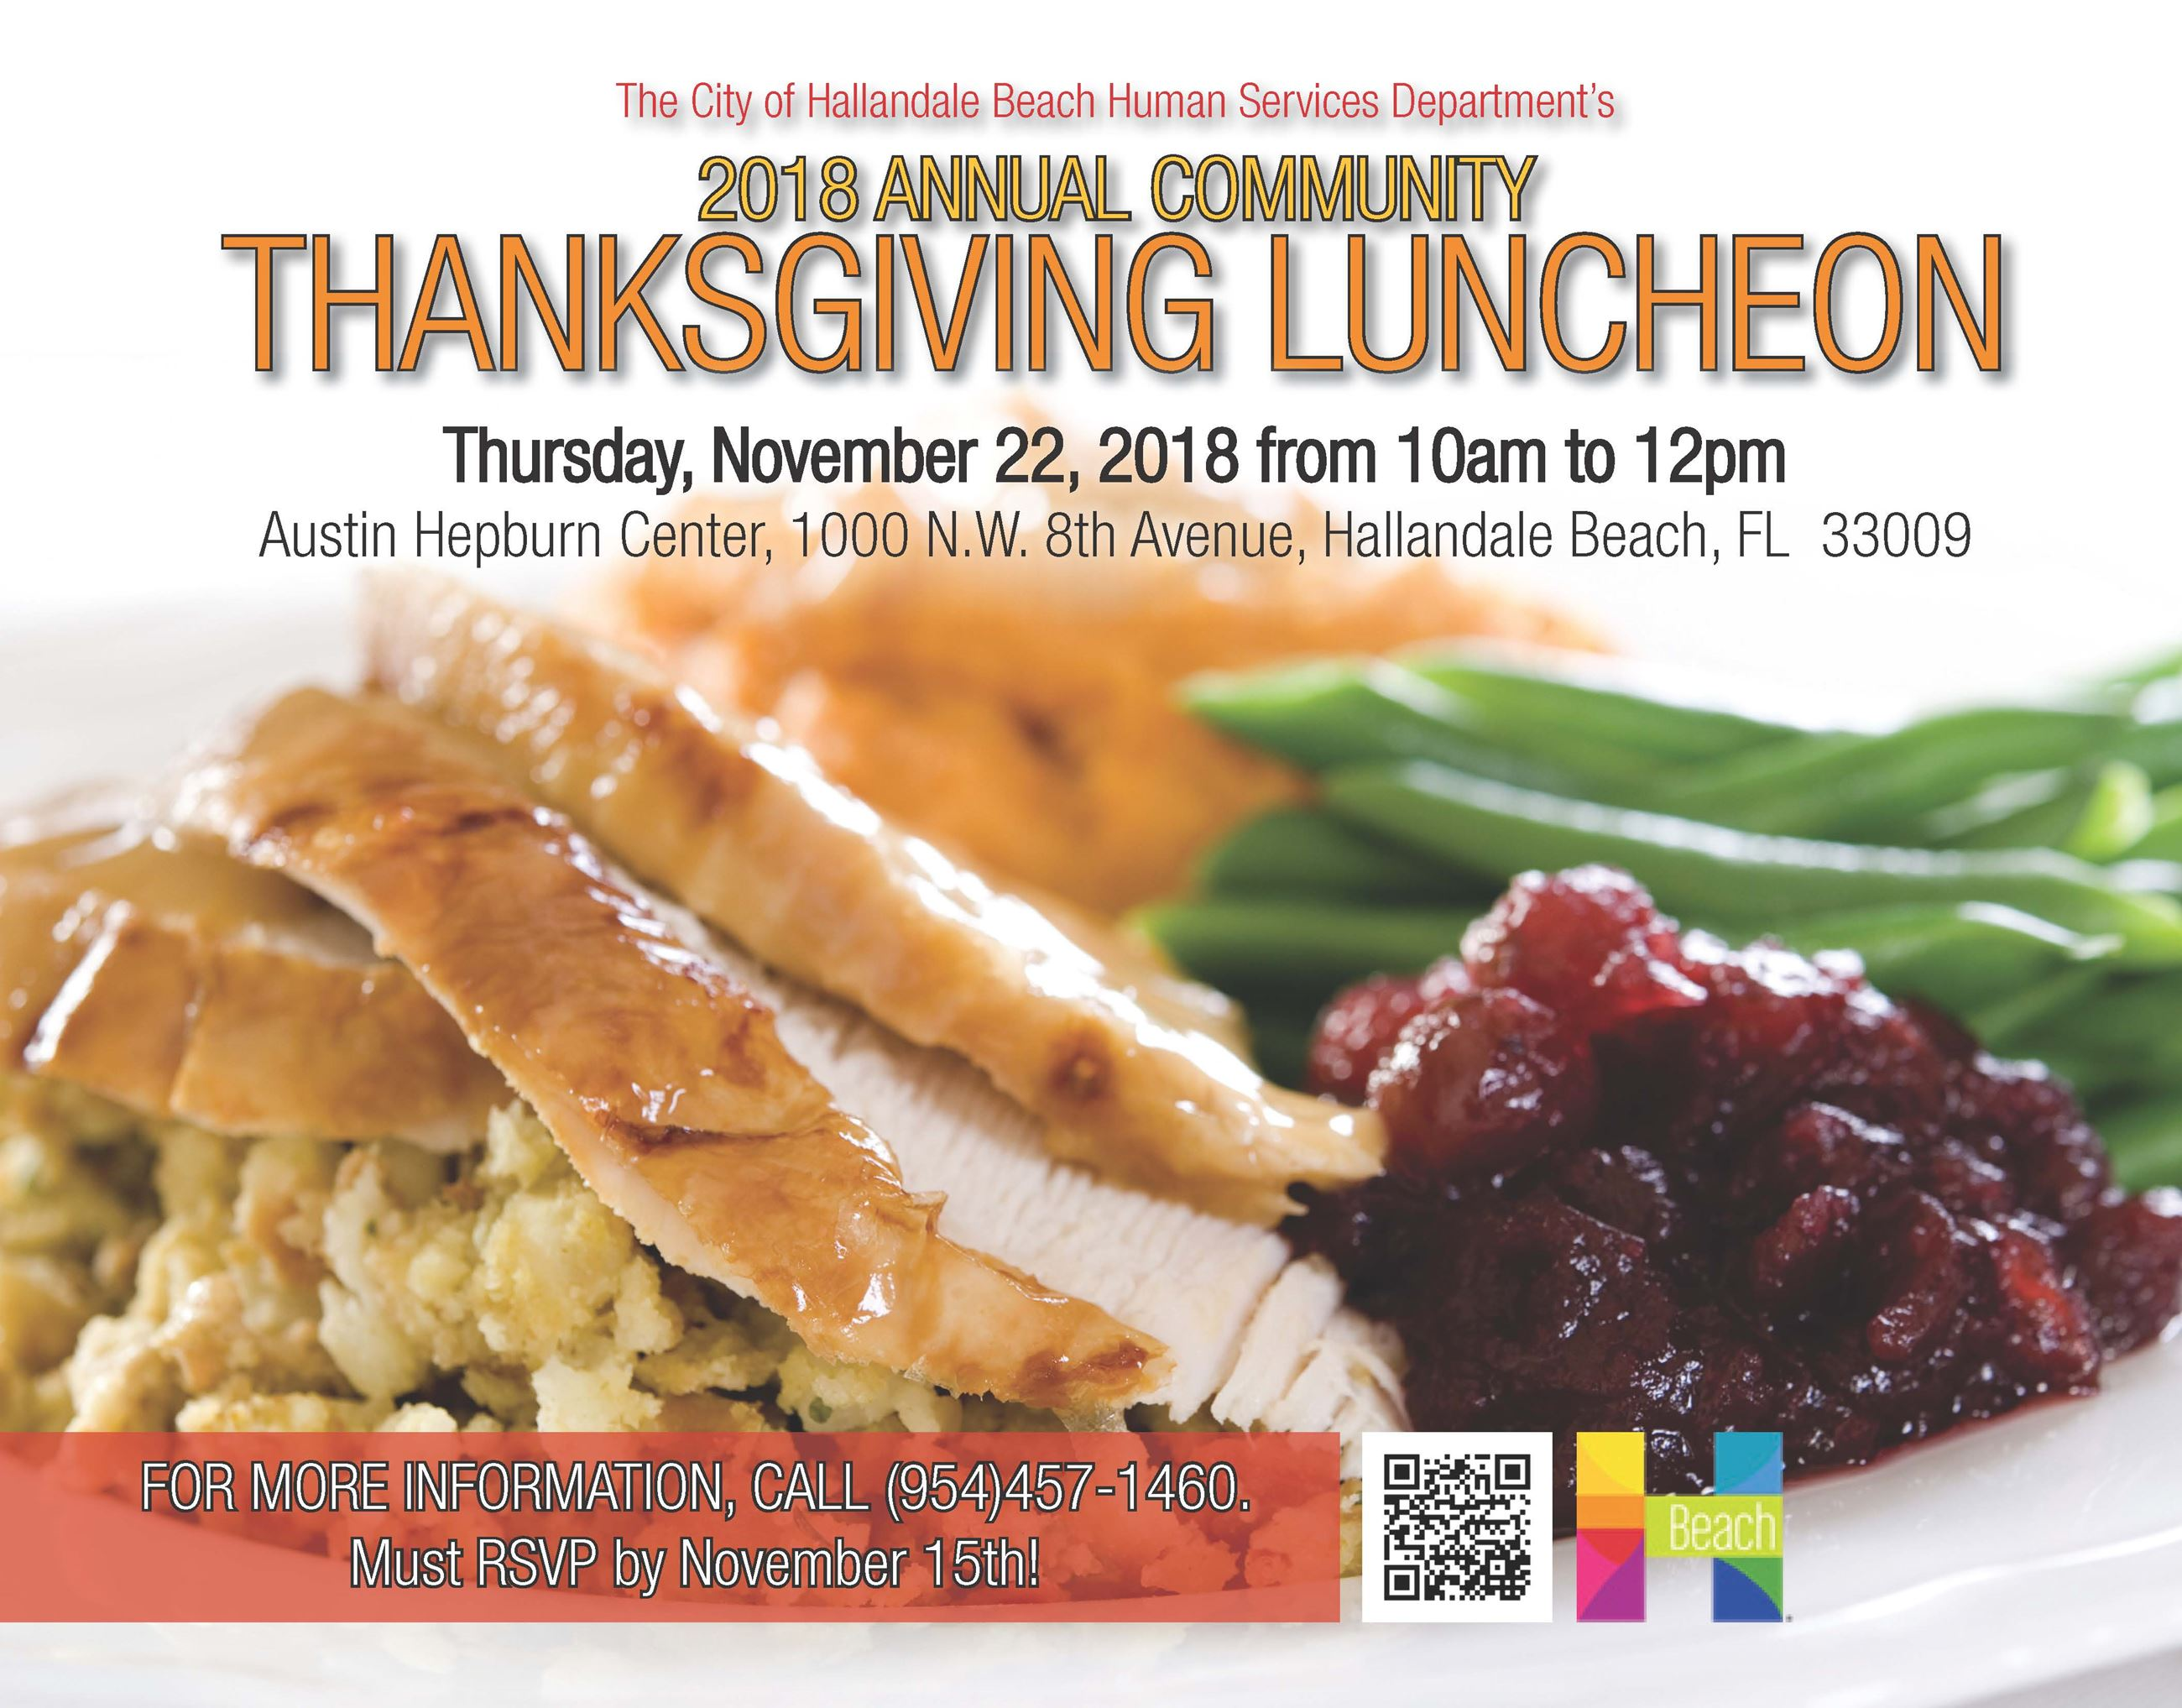 2018 Annual Community Thanksgiving Luncheon